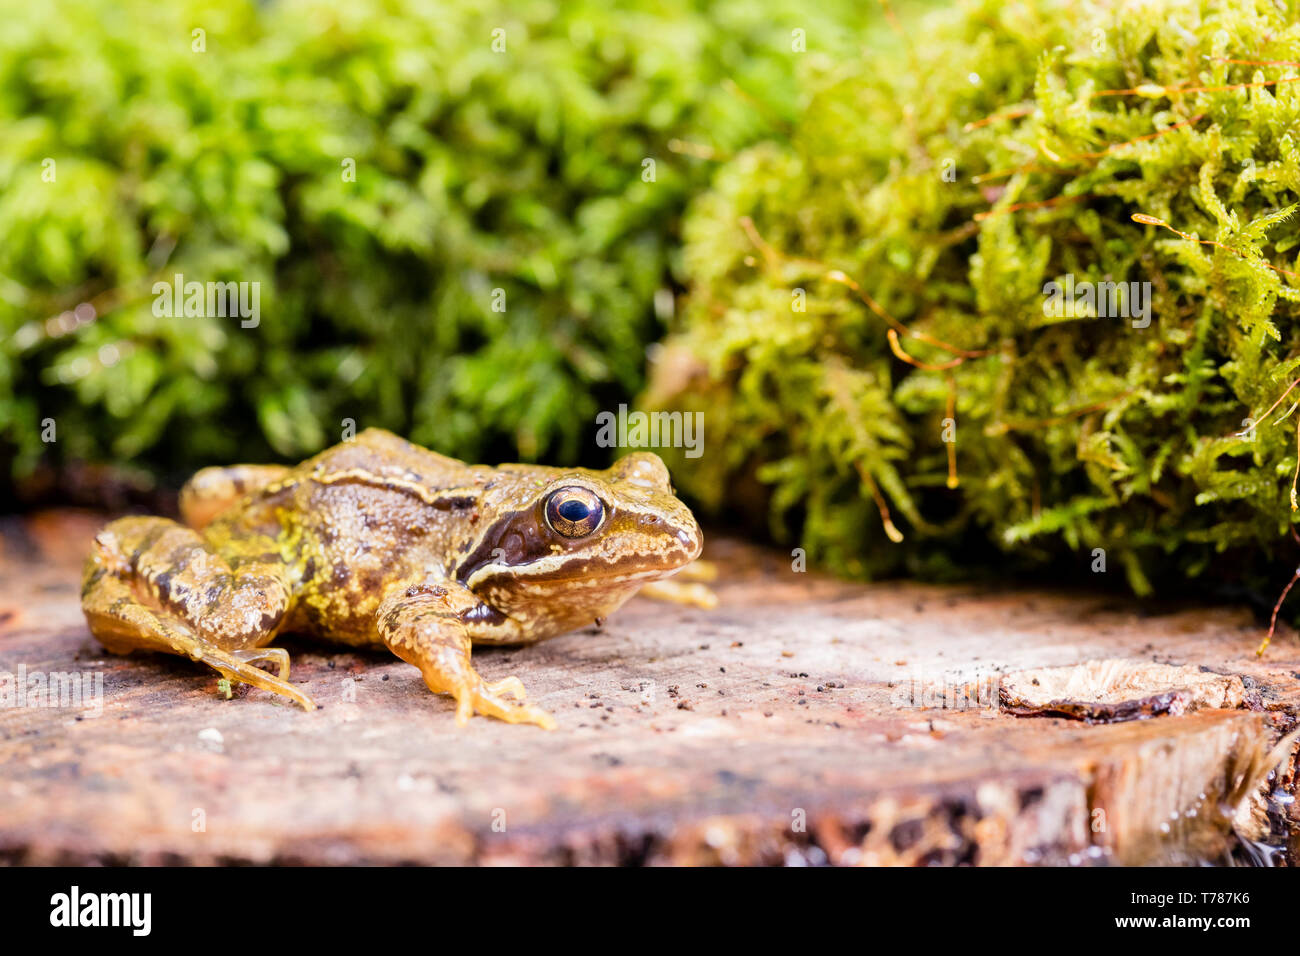 Common frog in Wales in springtime, Photographed in a controlled environment and then returned to where it was found. - Stock Image